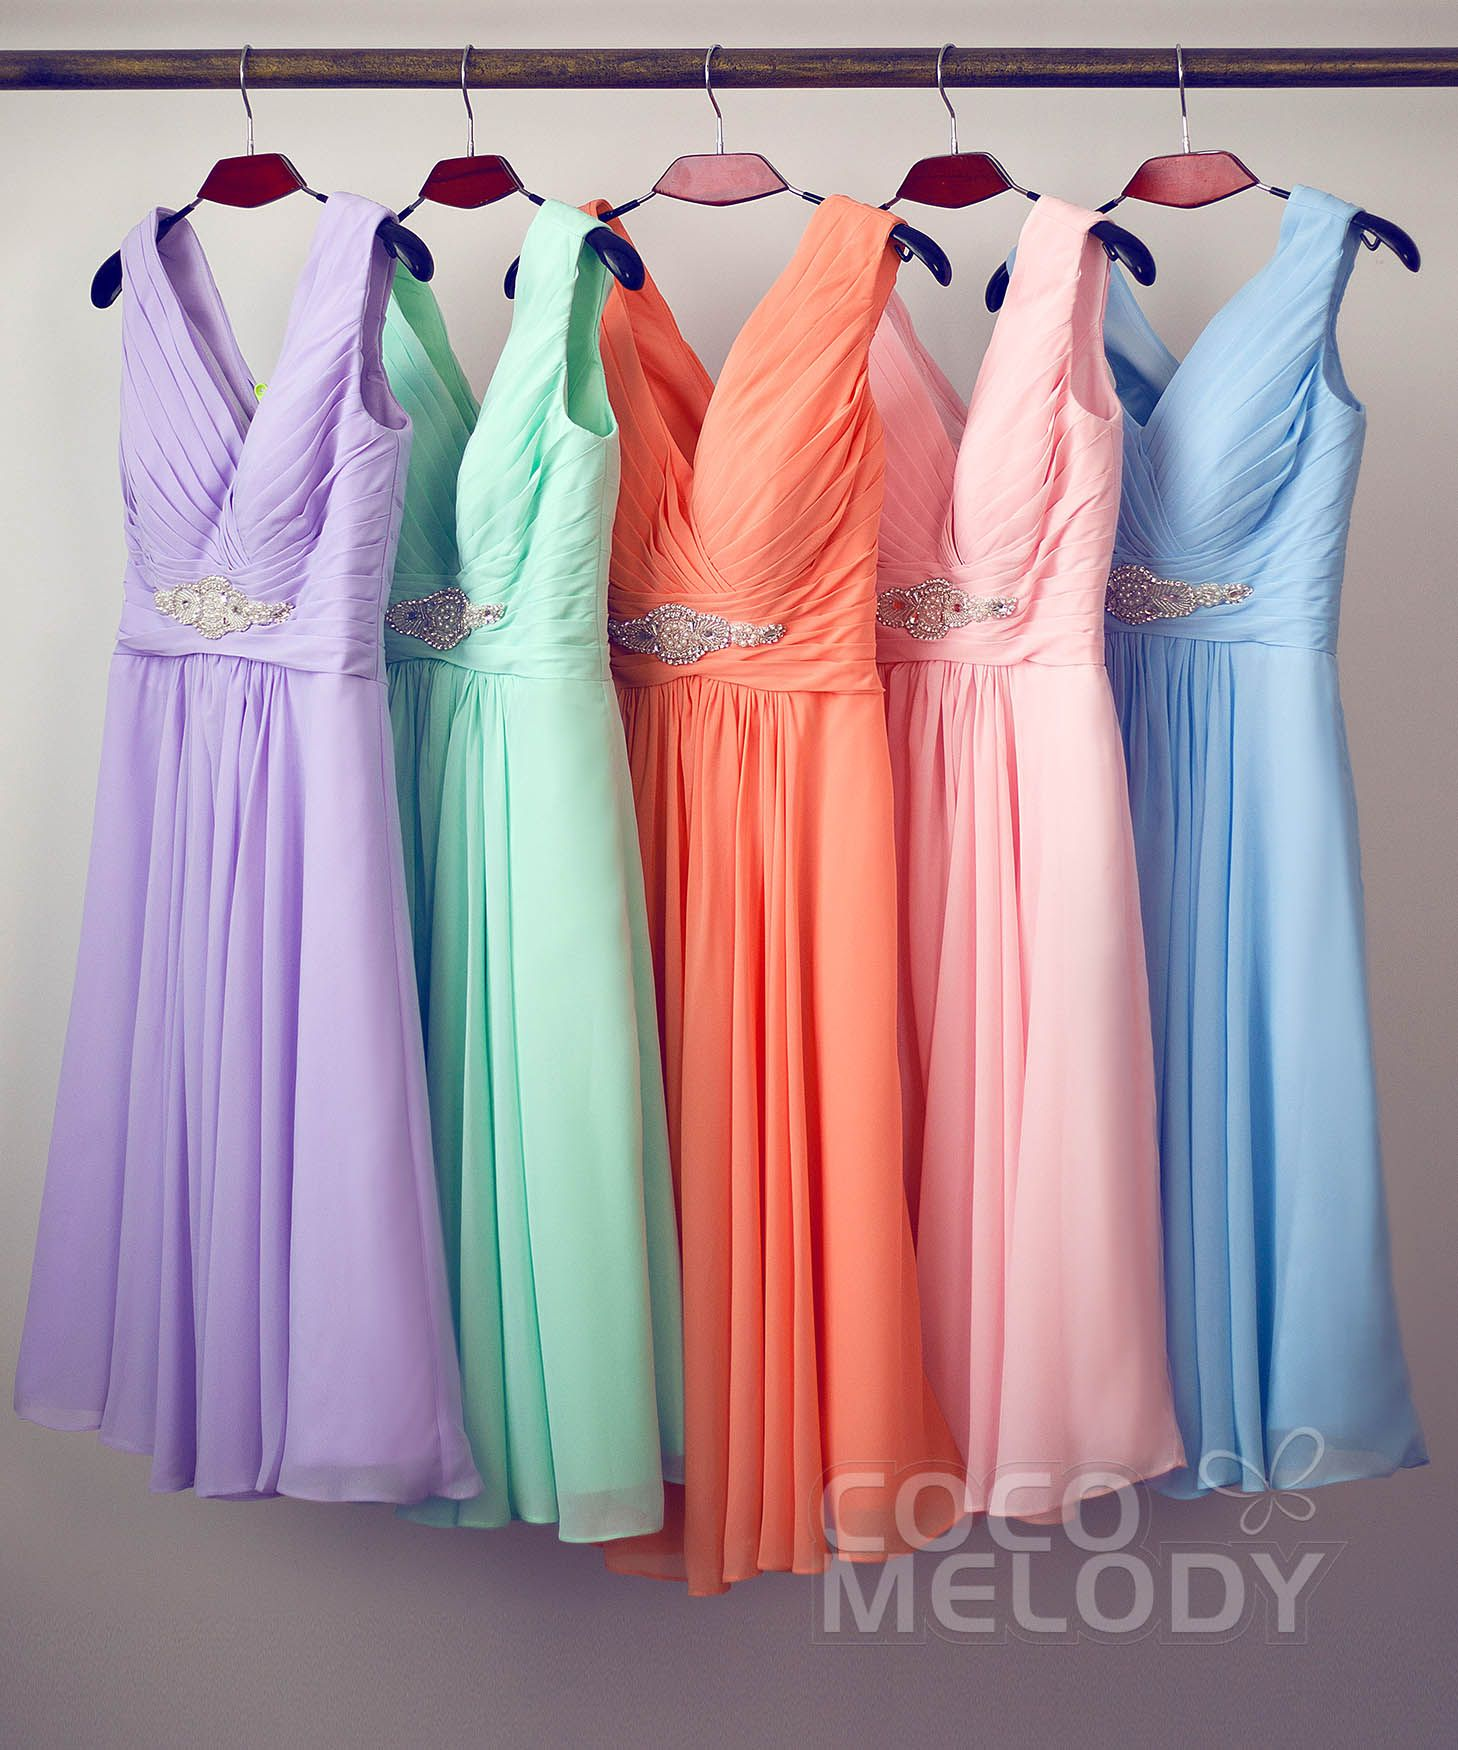 Hot selling a line v neck knee length chiffon bridesmaids dress hot selling a line v neck knee length chiffon bridesmaids dress cozk1302a ombrellifo Image collections